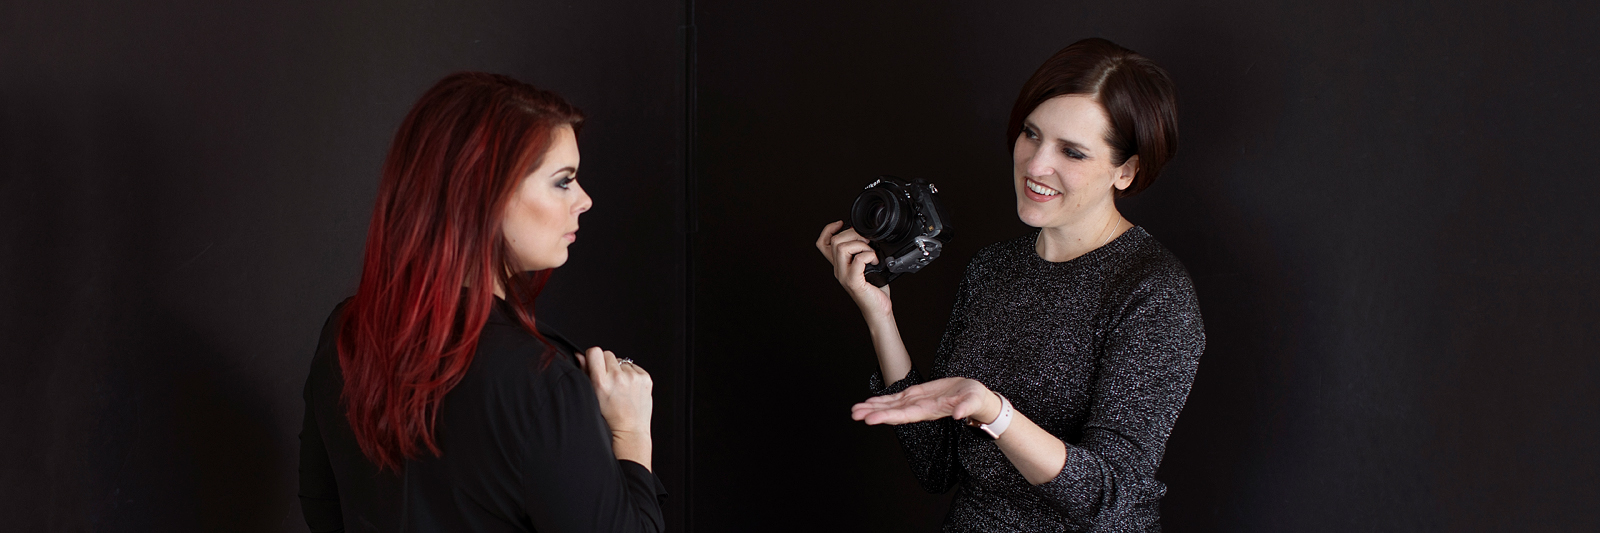 poses-that-sell-workshop-toes-nose-salable-headshots-beauty-confidence.jpg